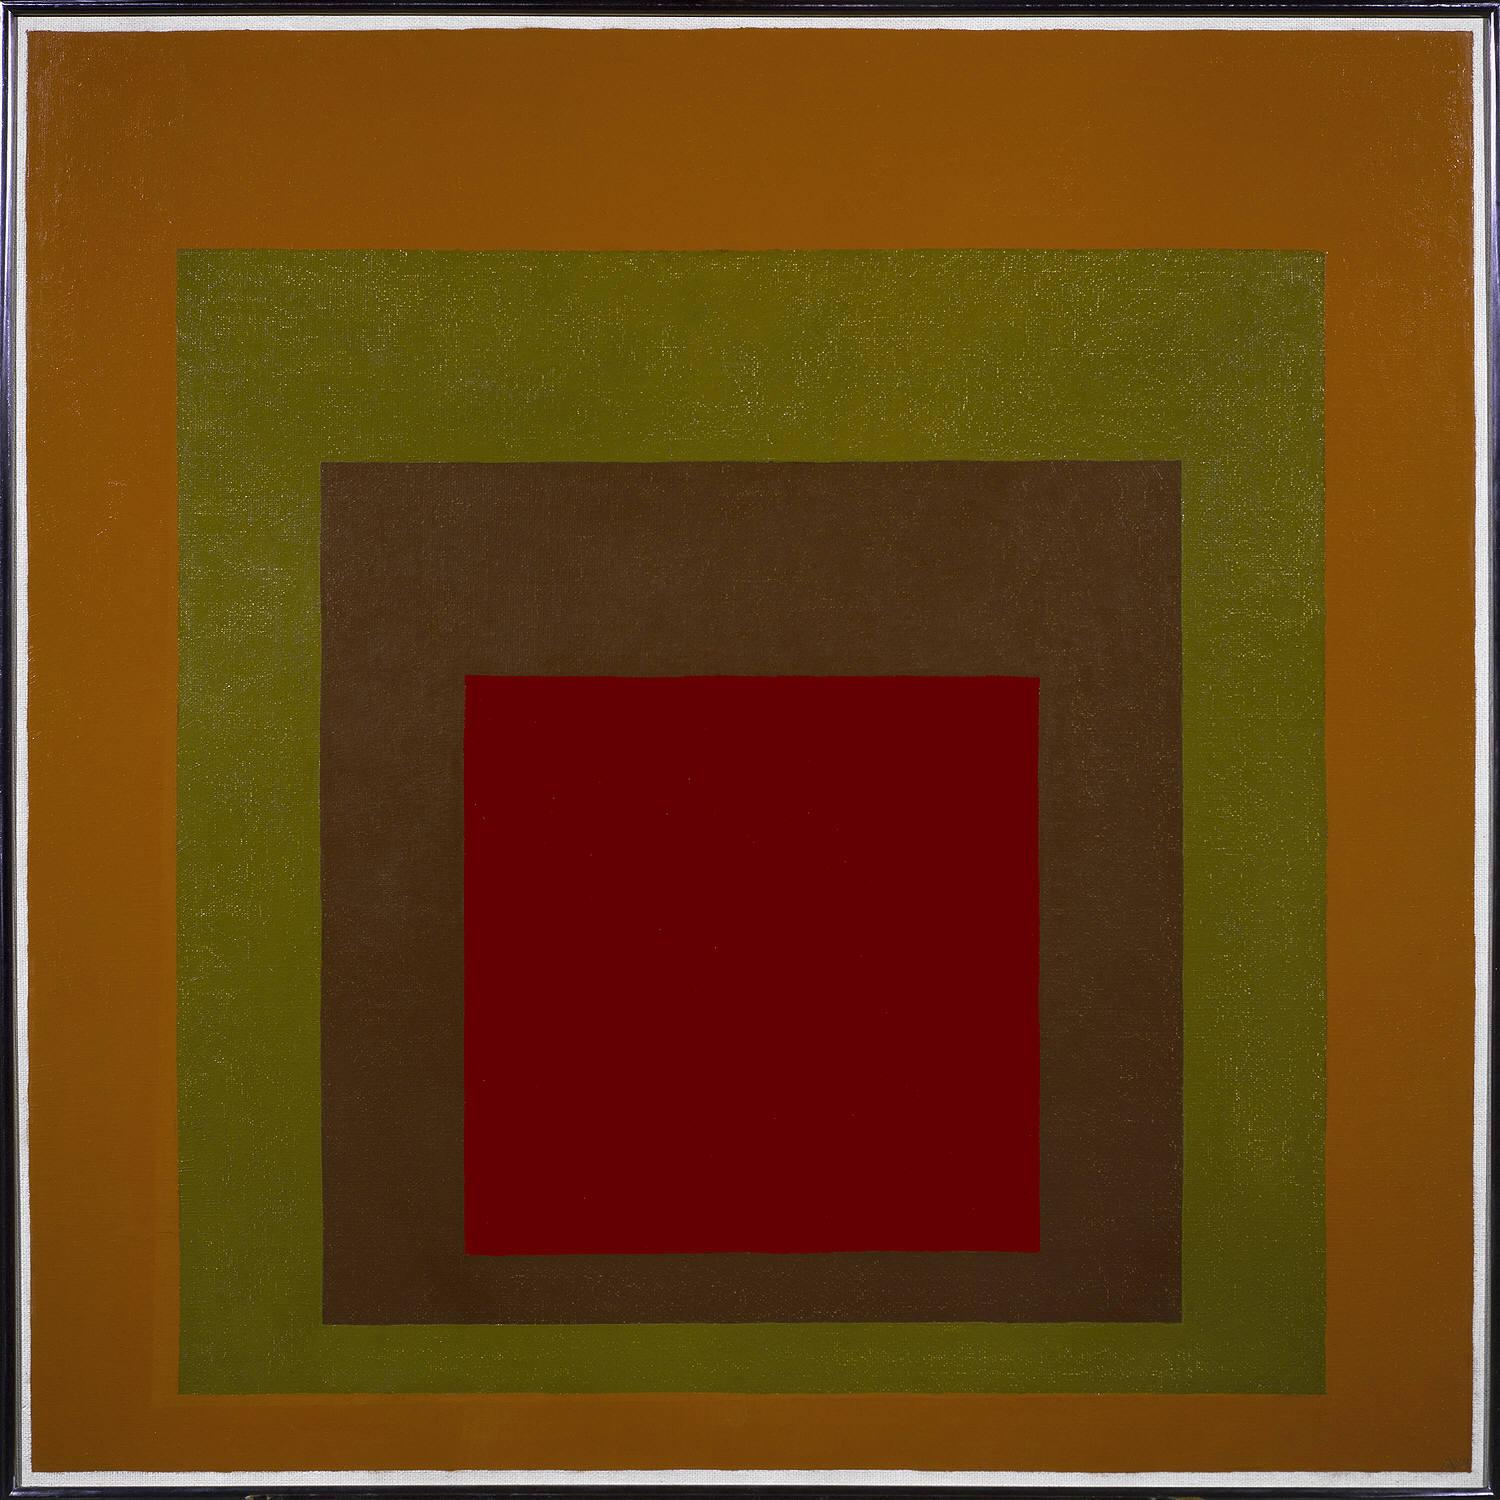 Josef Albers - Homage to the Square